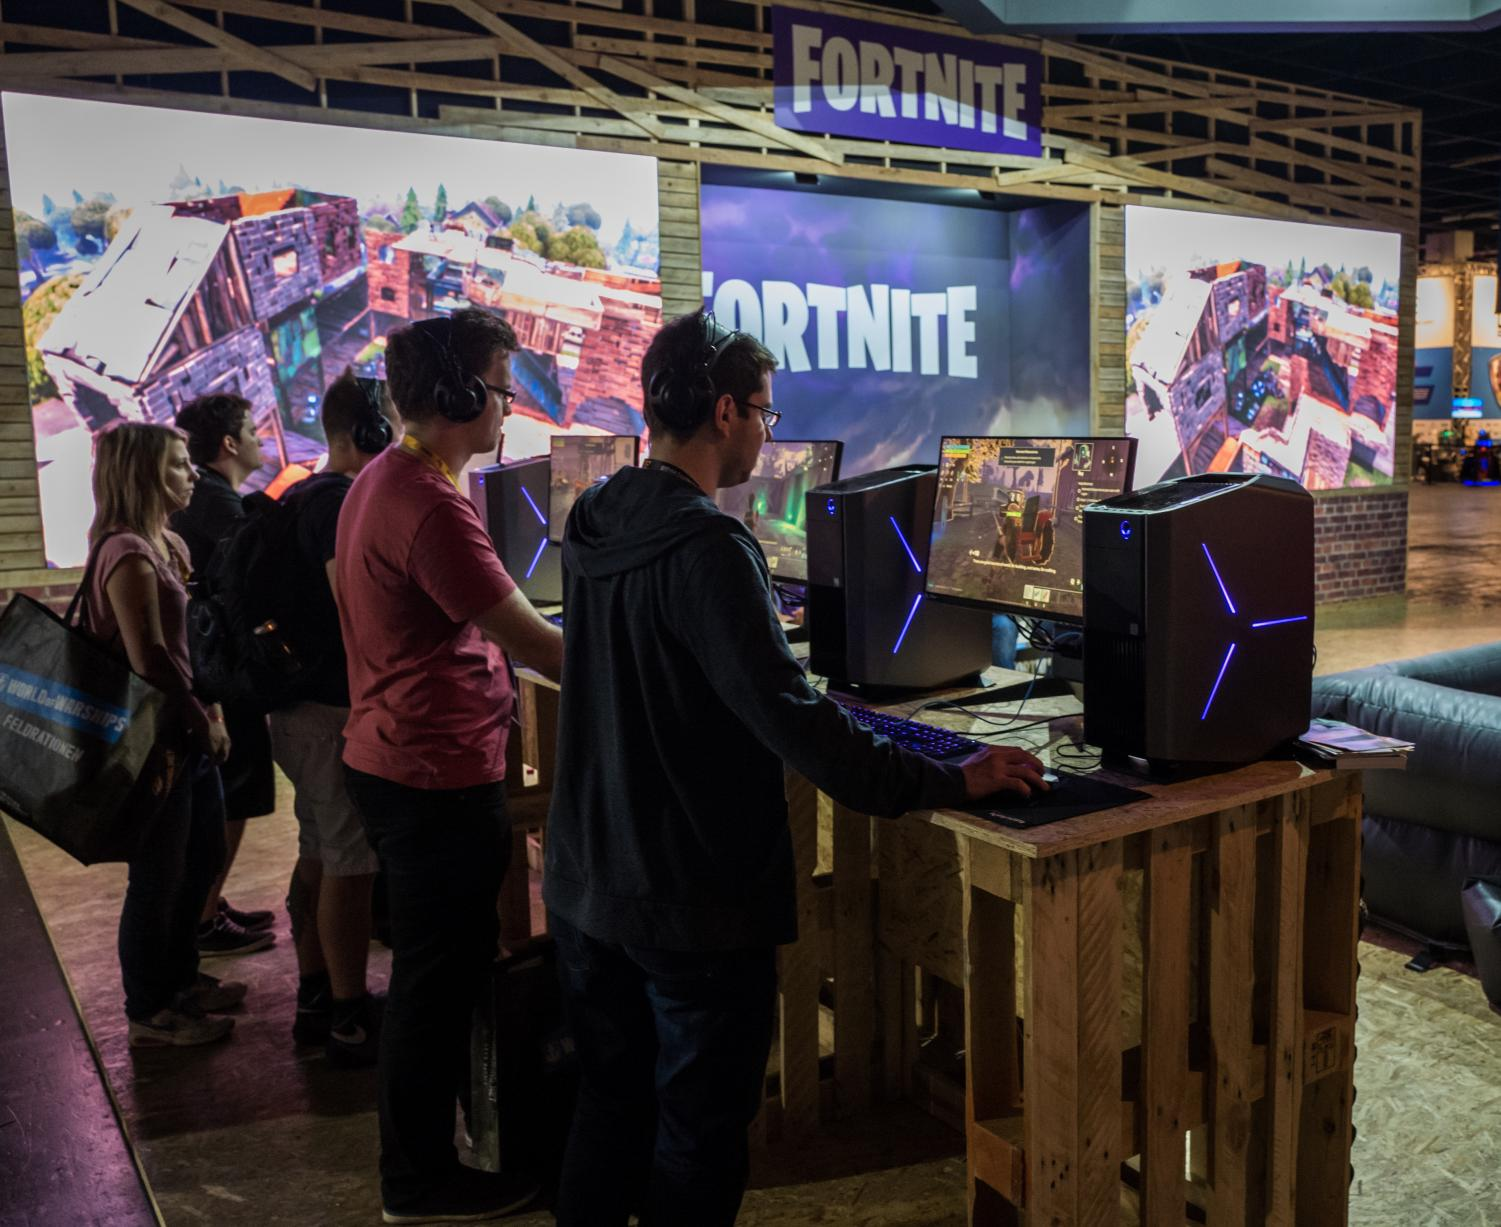 Fortnite Creates Monopoly on Gaming Industry